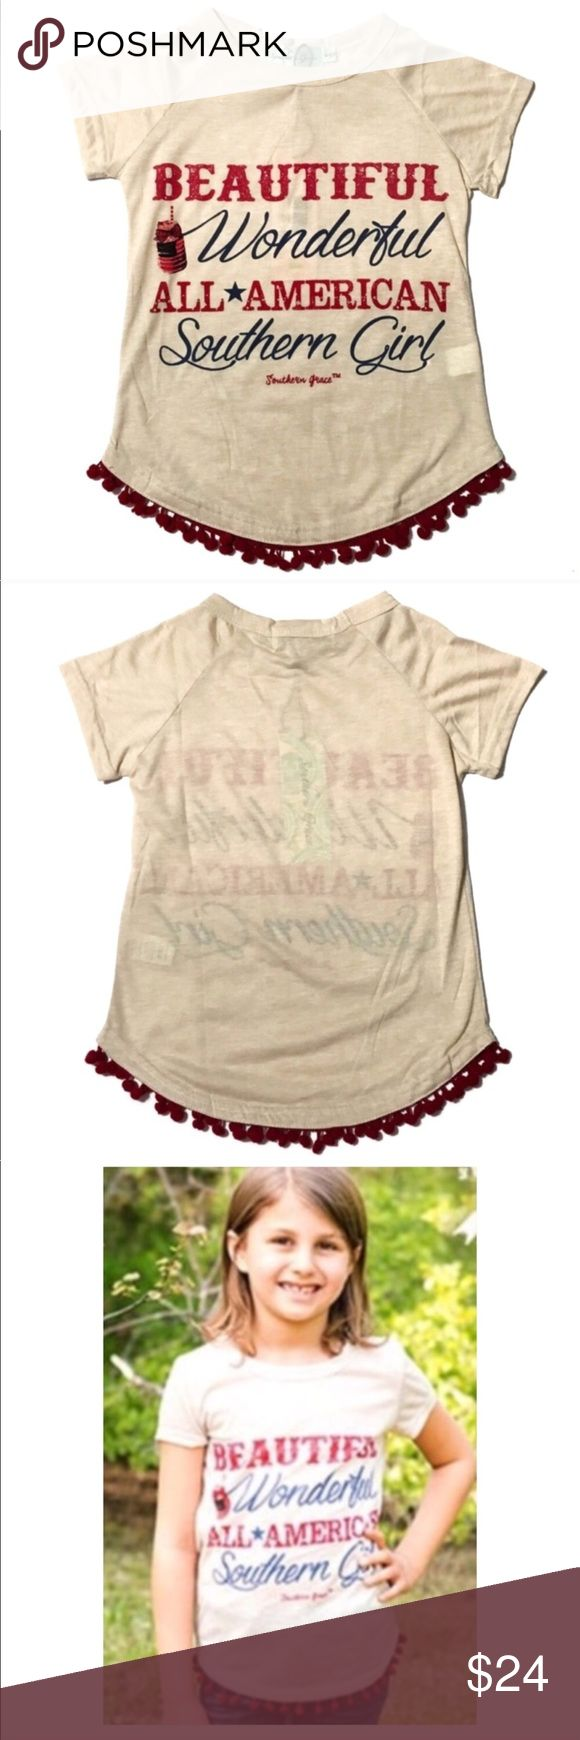 Beautiful Wonderful All-American Southern Girl Tee Beautiful, Wonderful, All-American Southern Girl. Cute tee shirt with red Pom Poms at hem. Patriotic t-shirt from Southern Grace. ‼️Size listed as 7 is actually size 6/8 according to the tag. 👠   🔺Questions? Please ask.  🔺I want your Poshmark experience to be easy & enjoyable. 🔺Thank you for shopping at Posh Mishmosh. Eb SQ Southern Grace Shirts & Tops Tees - Short Sleeve